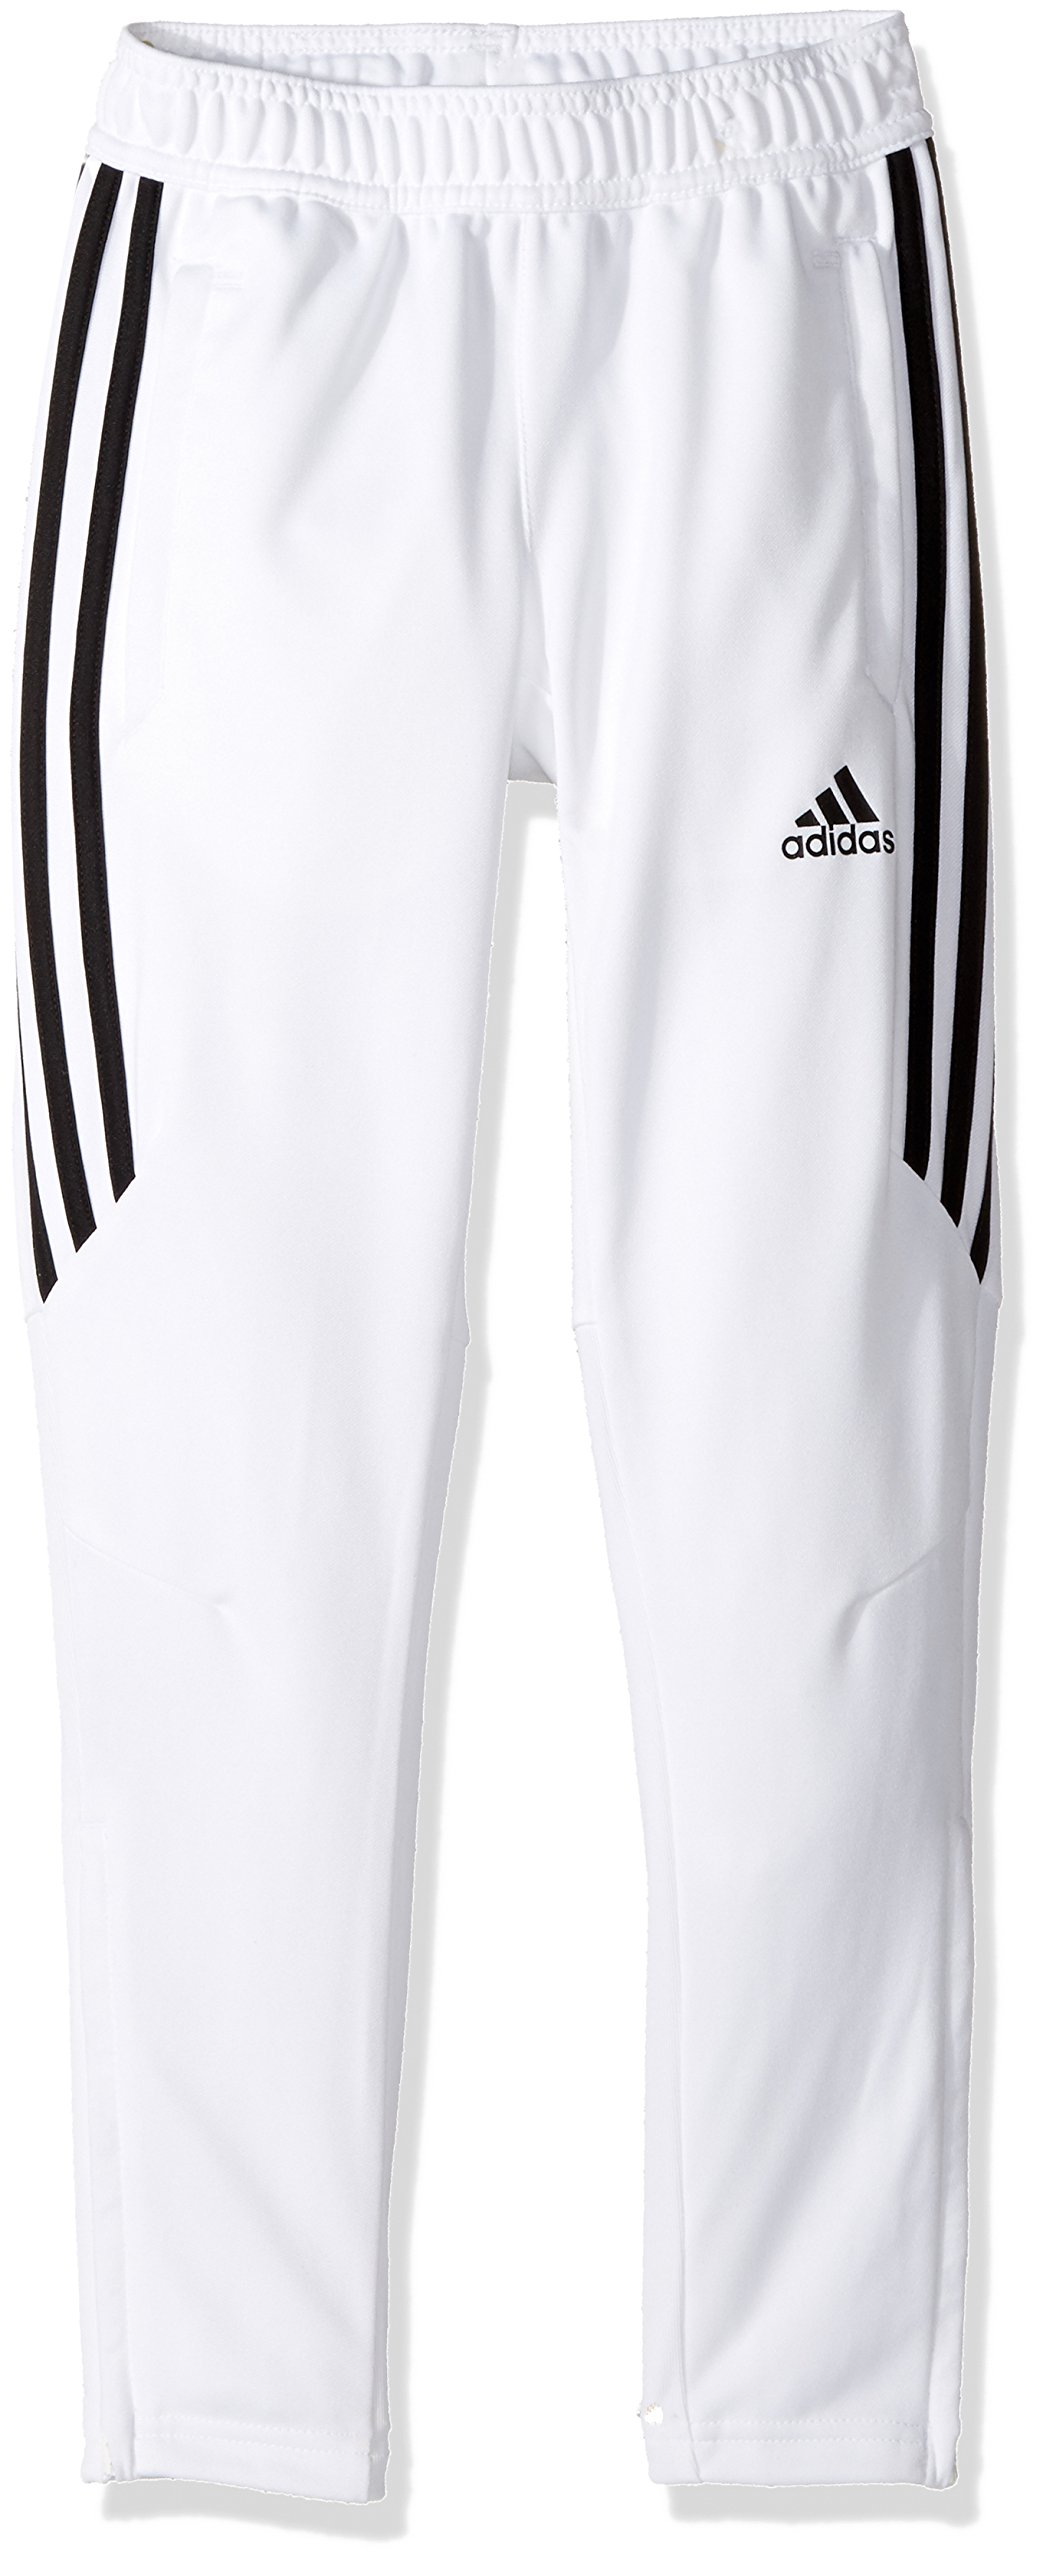 adidas Youth Soccer Tiro 17 Training Pants, White/Black, XX-Small